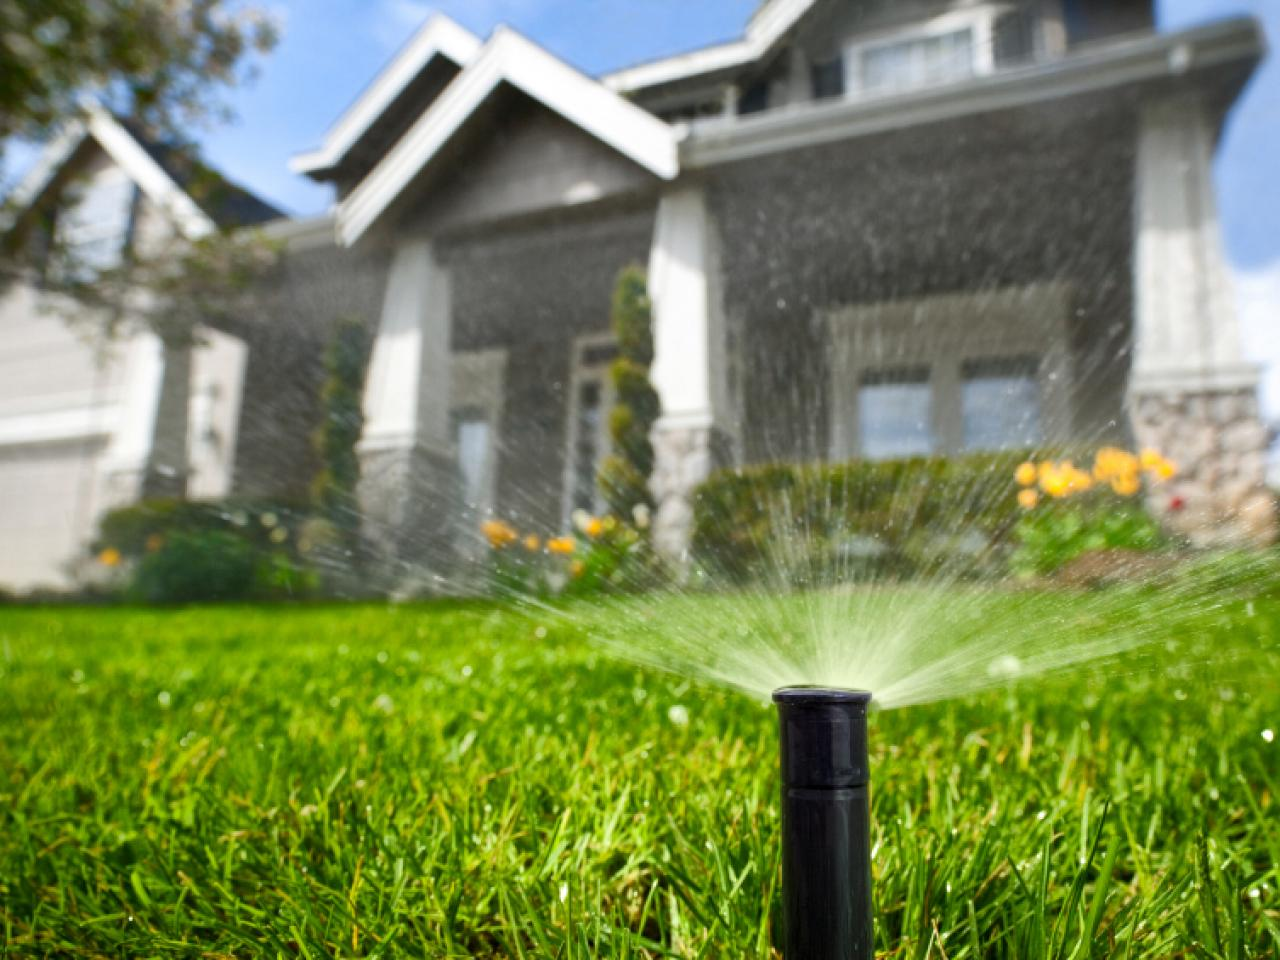 How To Install In Ground Sprinkler System For Homeowner?